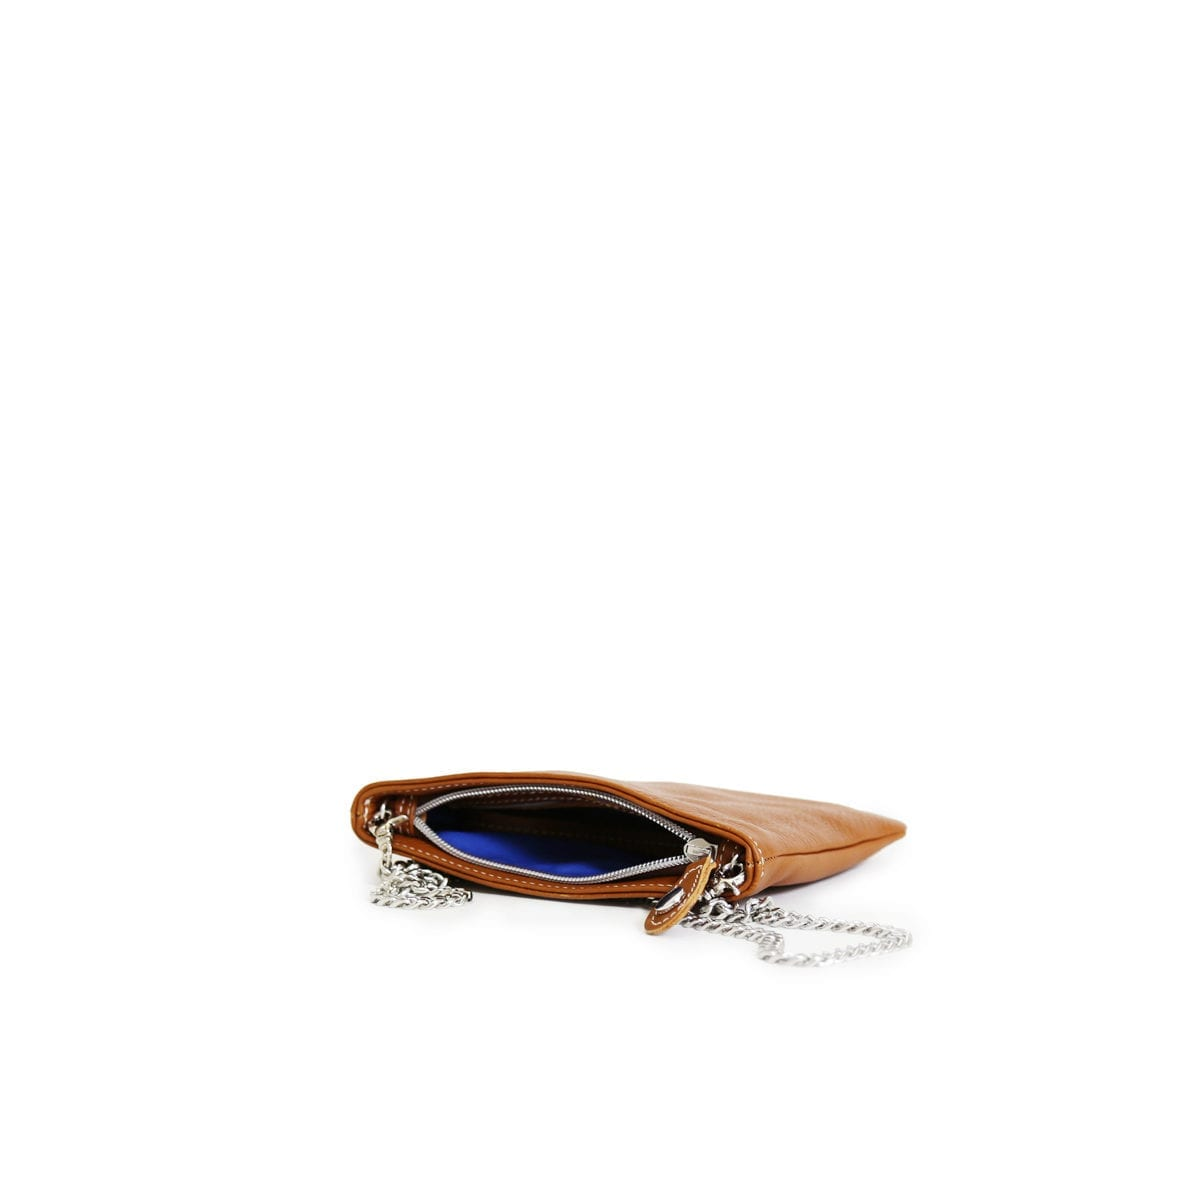 LUMI Laura Envelope Clutch in timeless and elegant toffee colour.